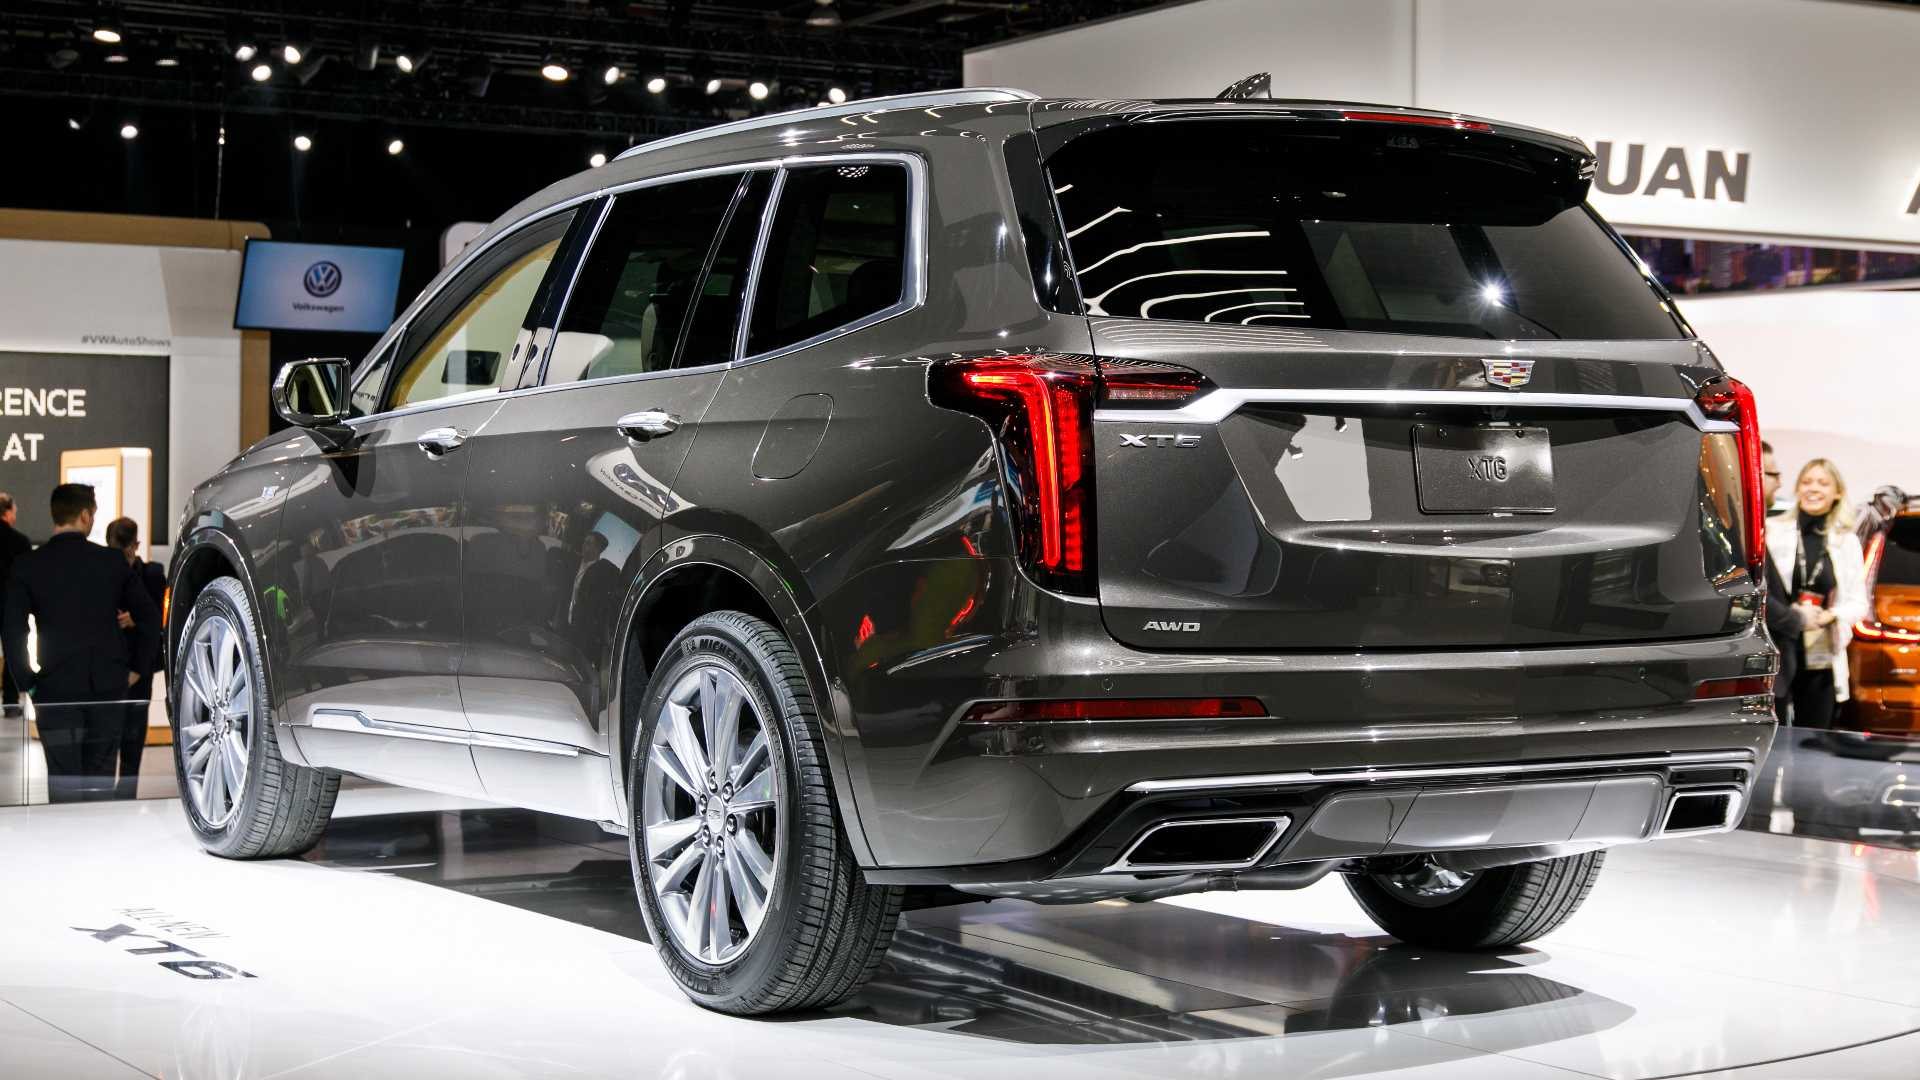 31 New 2020 Cadillac Xt6 Interior Colors Overview